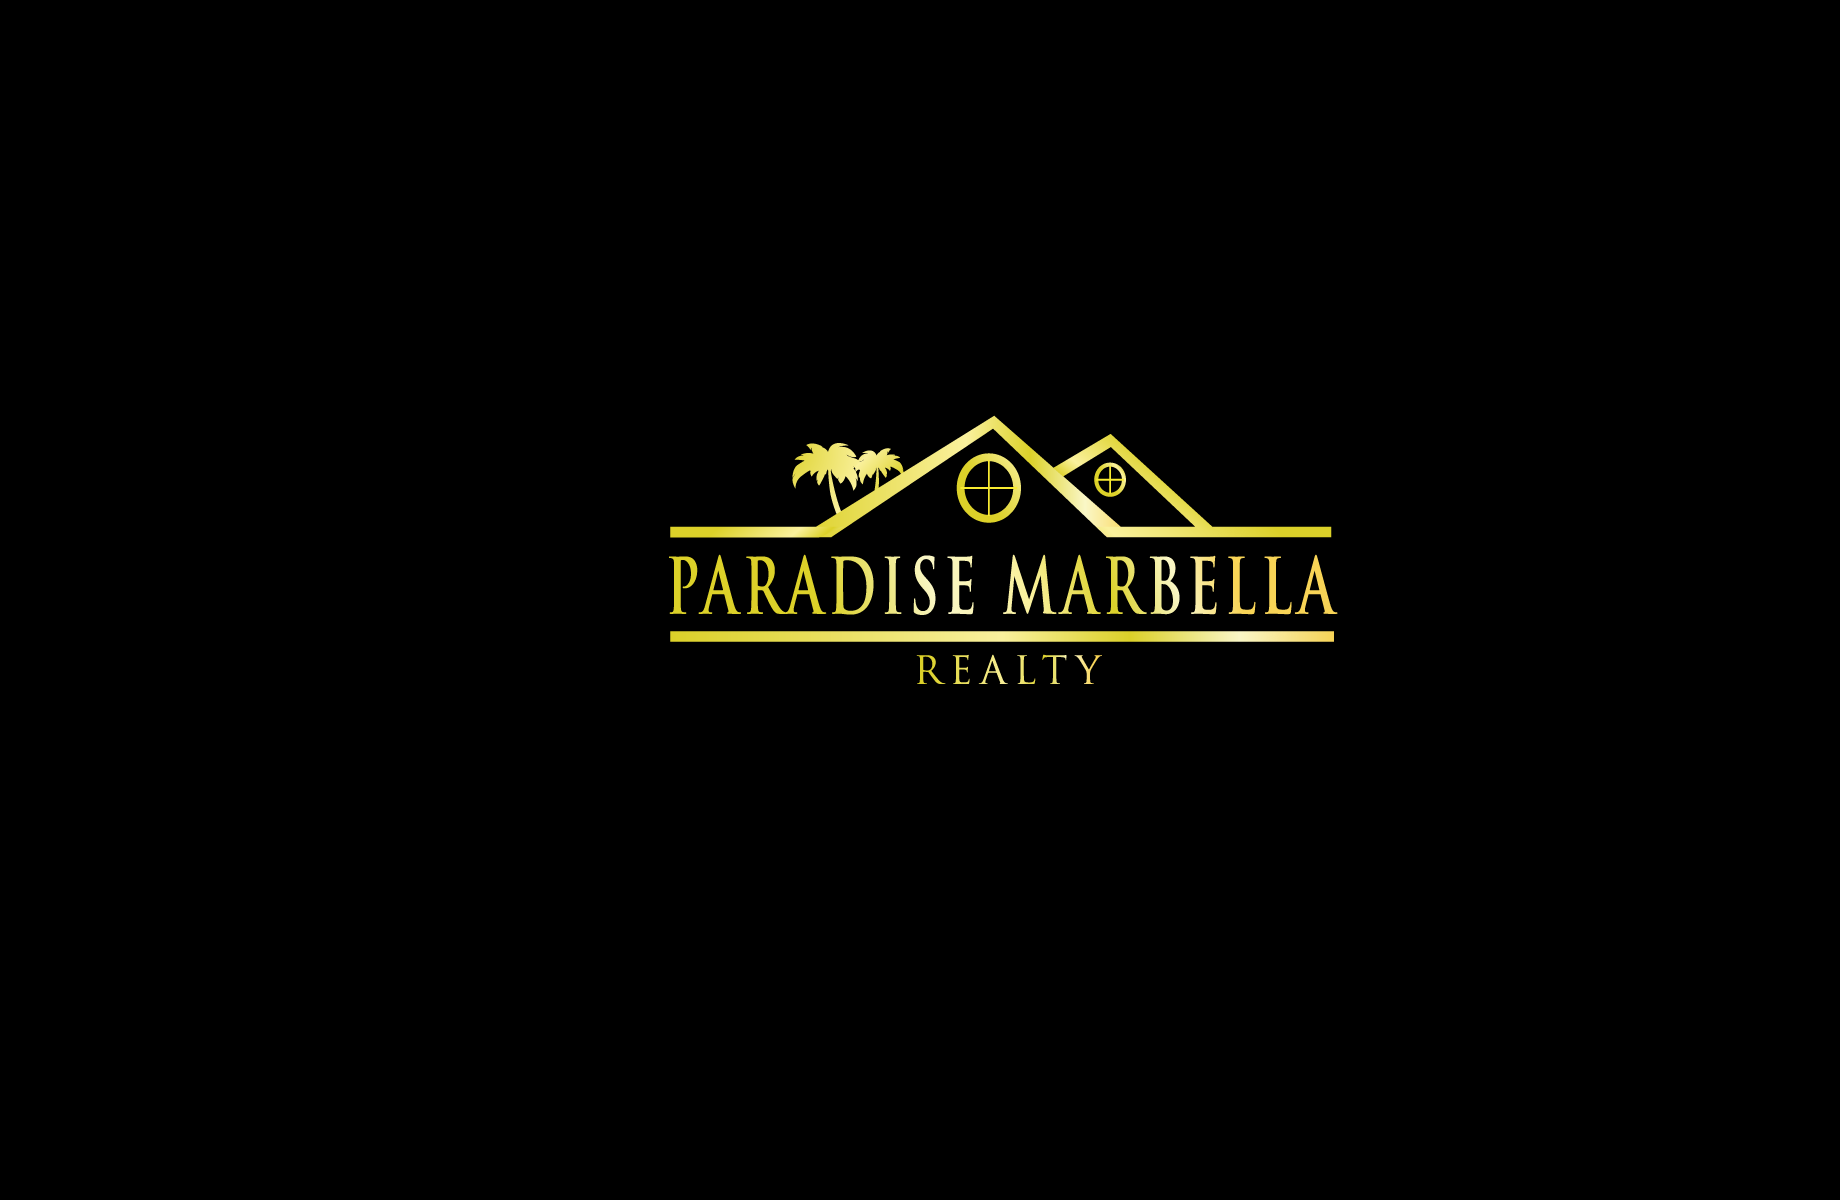 Logo Design by Jan Chua - Entry No. 80 in the Logo Design Contest Captivating Logo Design for Paradise Marbella Realty.